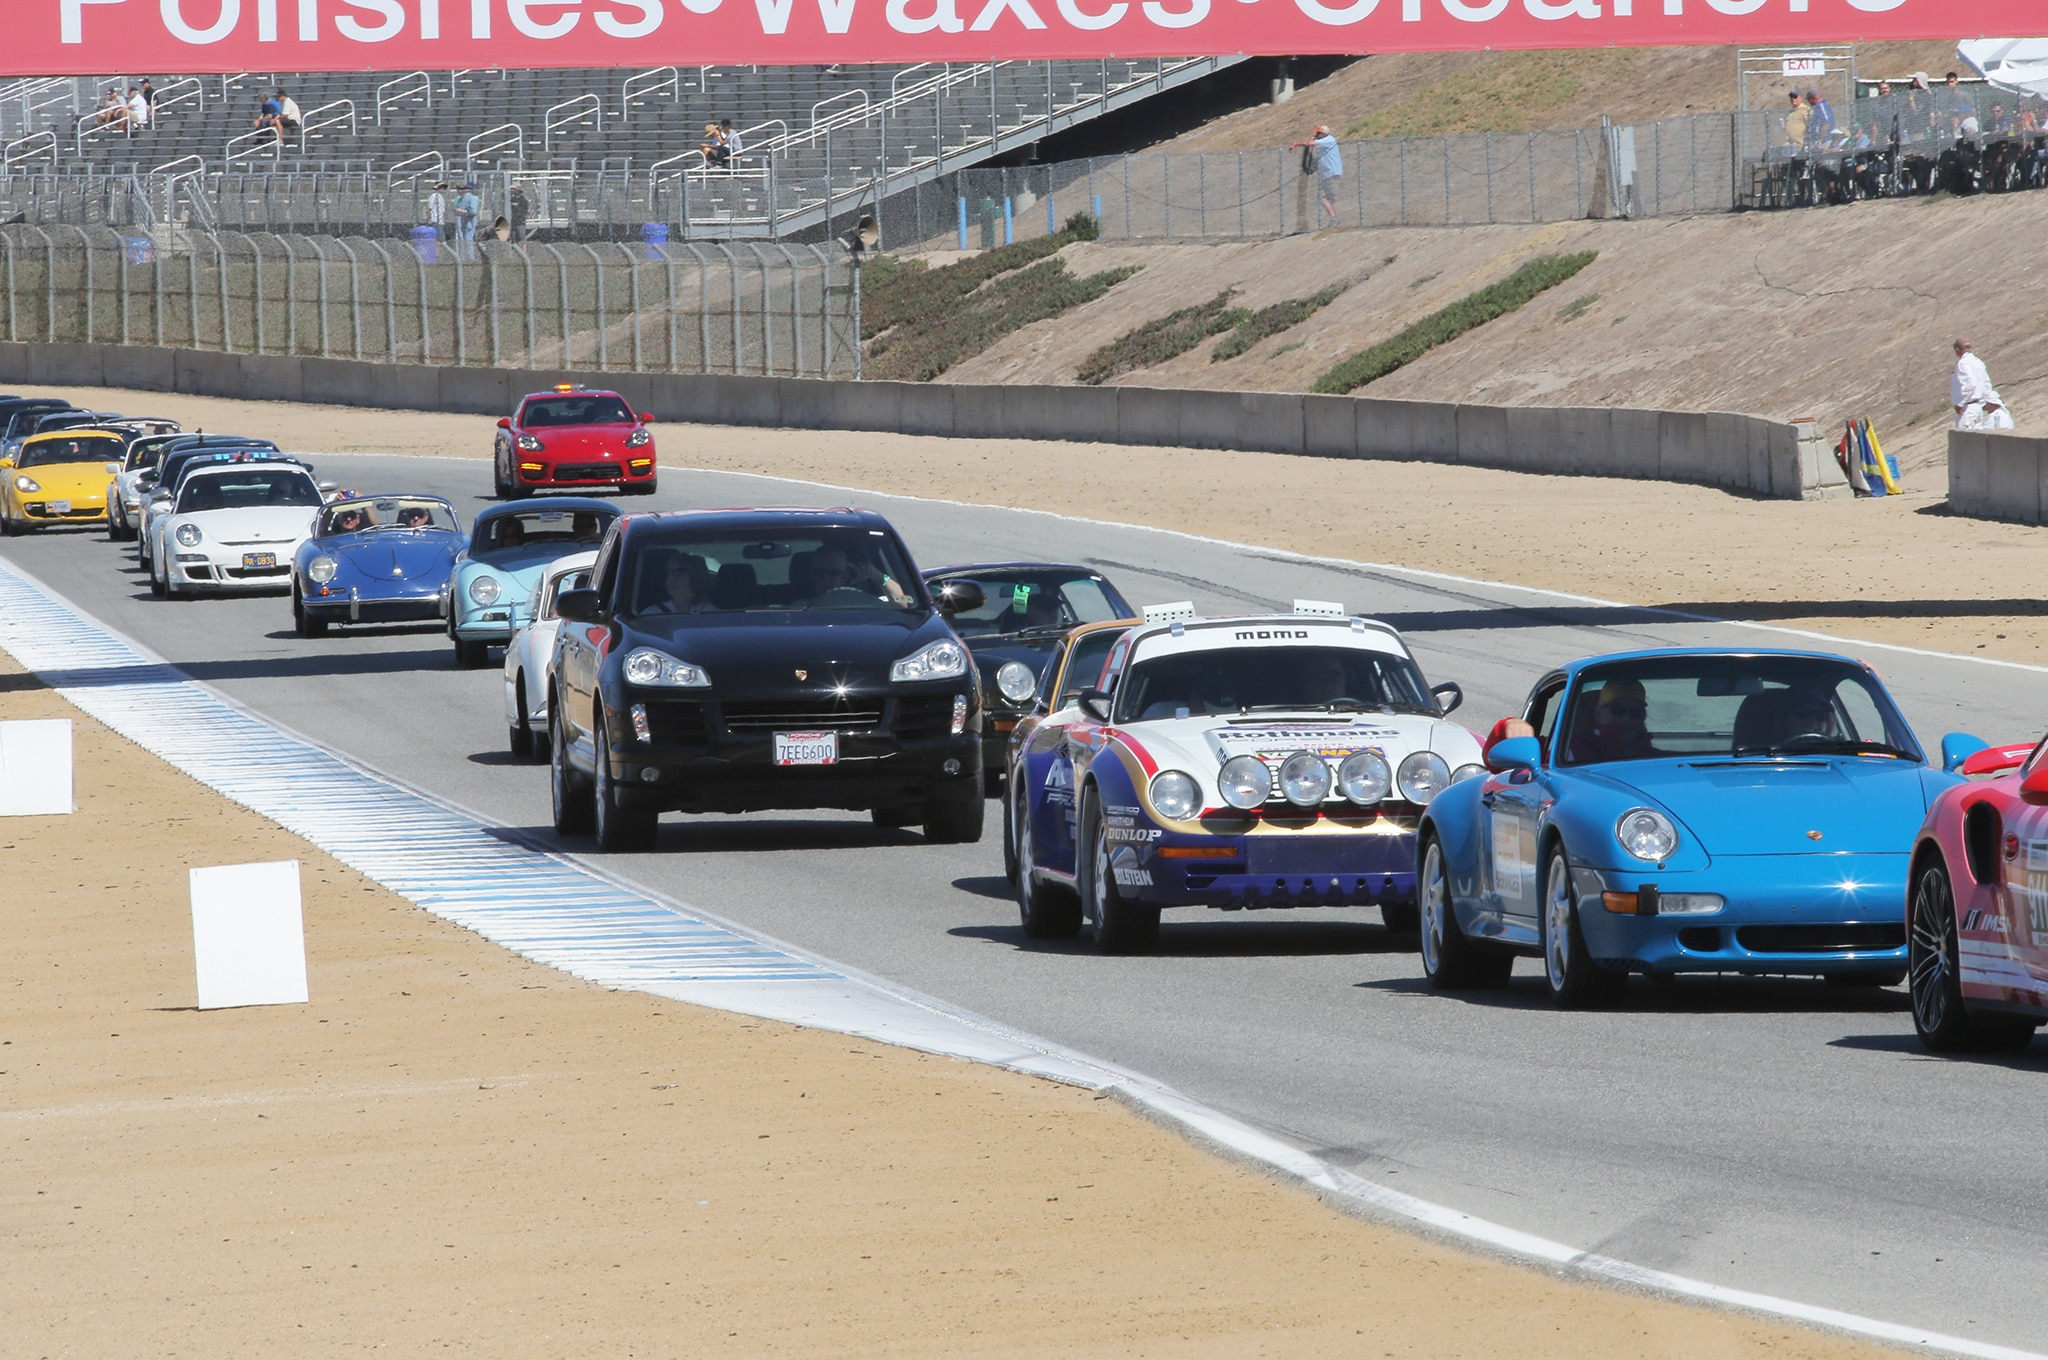 26. Porsche owners jammed the track when given a chance to get on a parade lap.